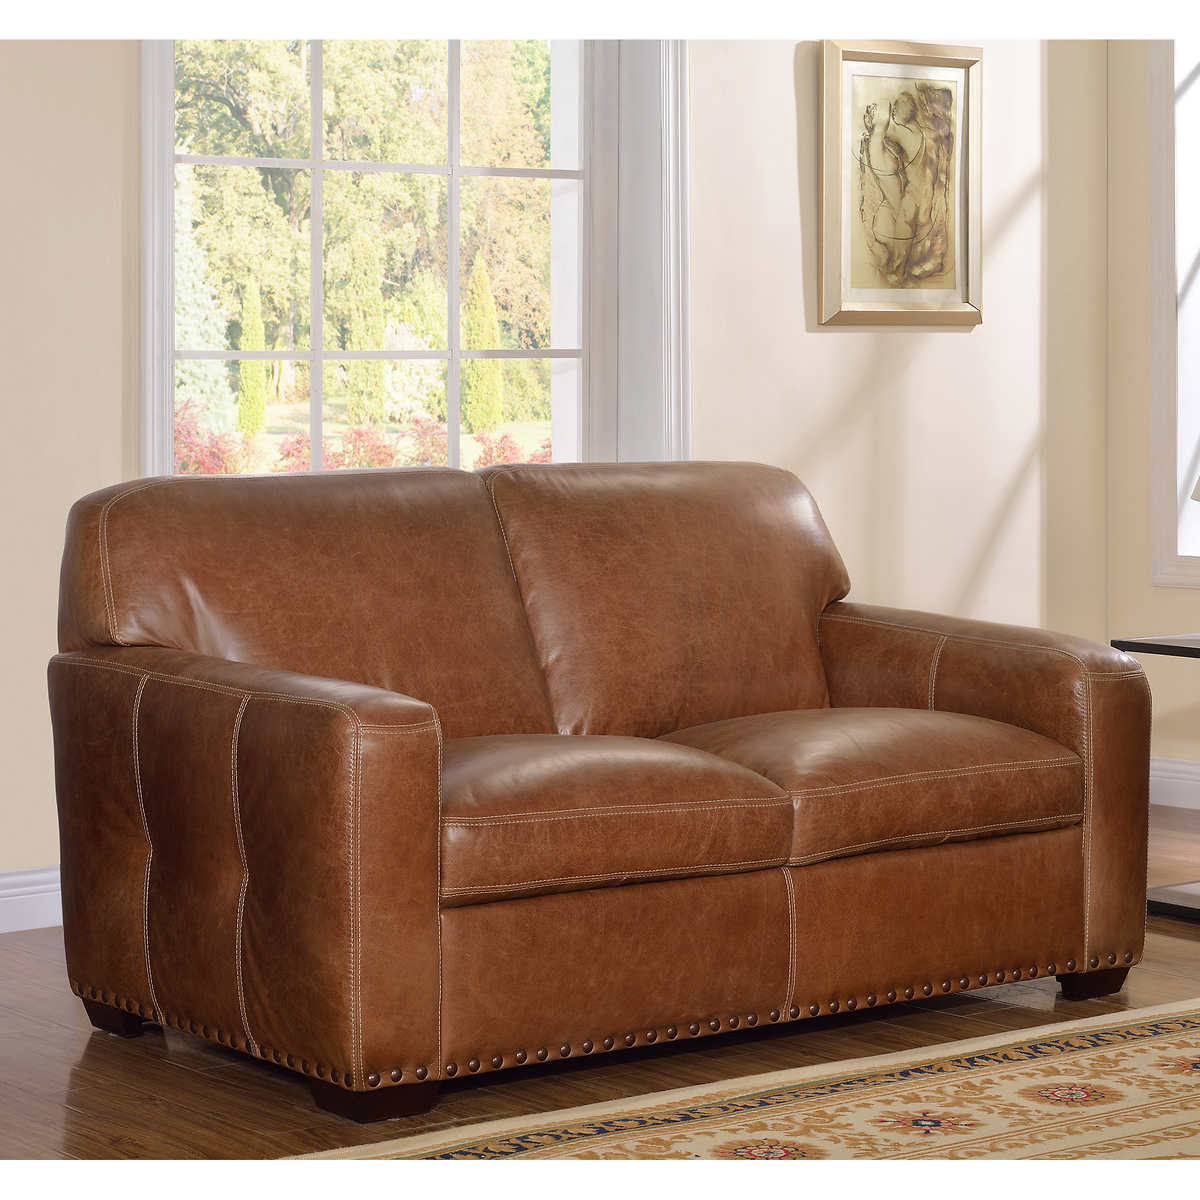 Tan Leather Living Room Set Leather Sofas Sectionals